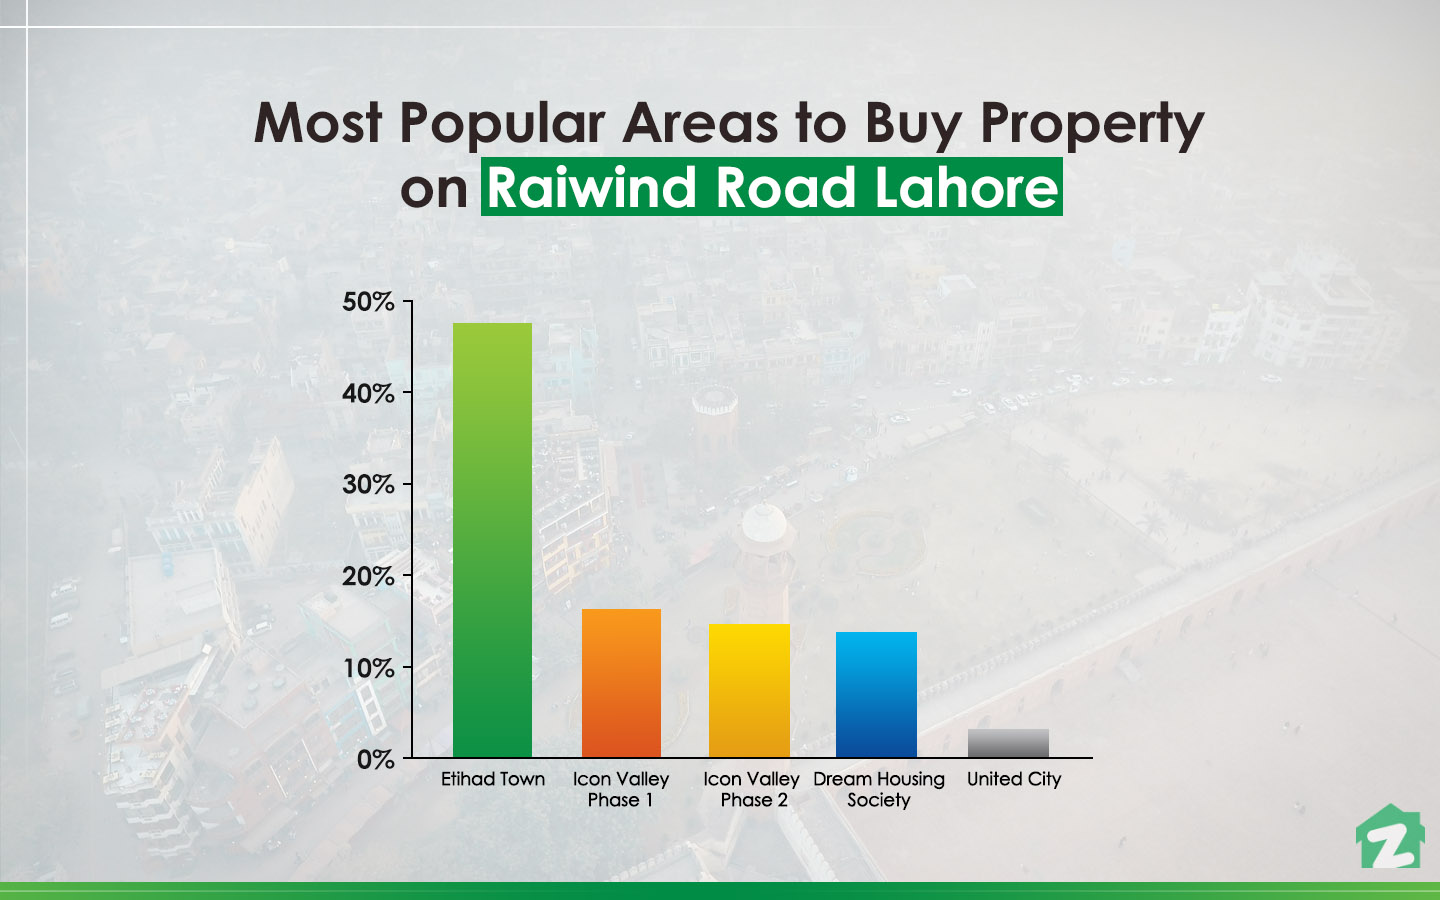 Popular areas on Raiwind Road Lahore for buying properties